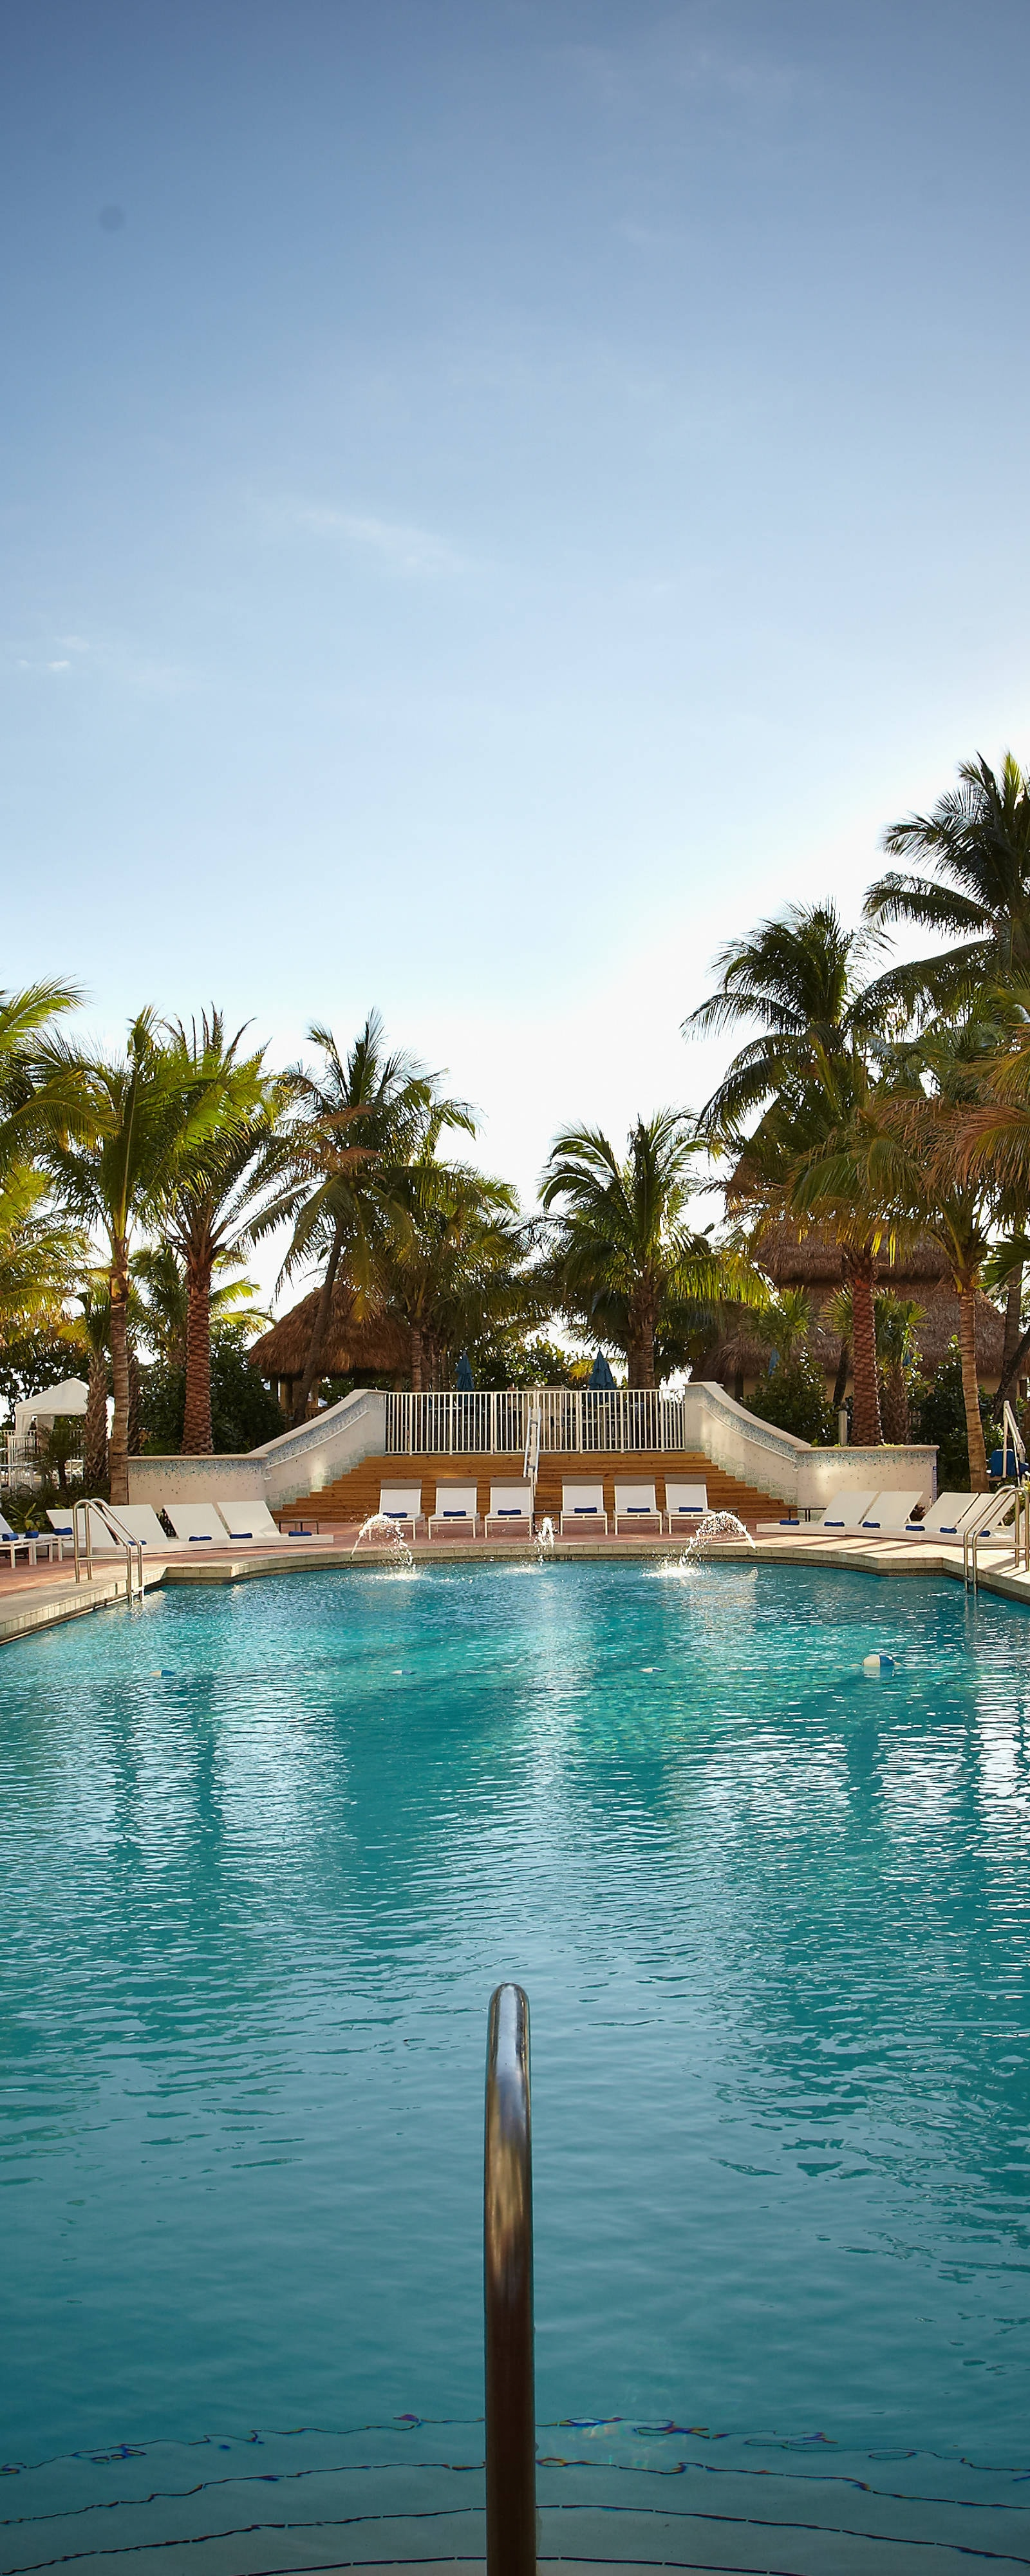 Piscina en Miami Beach